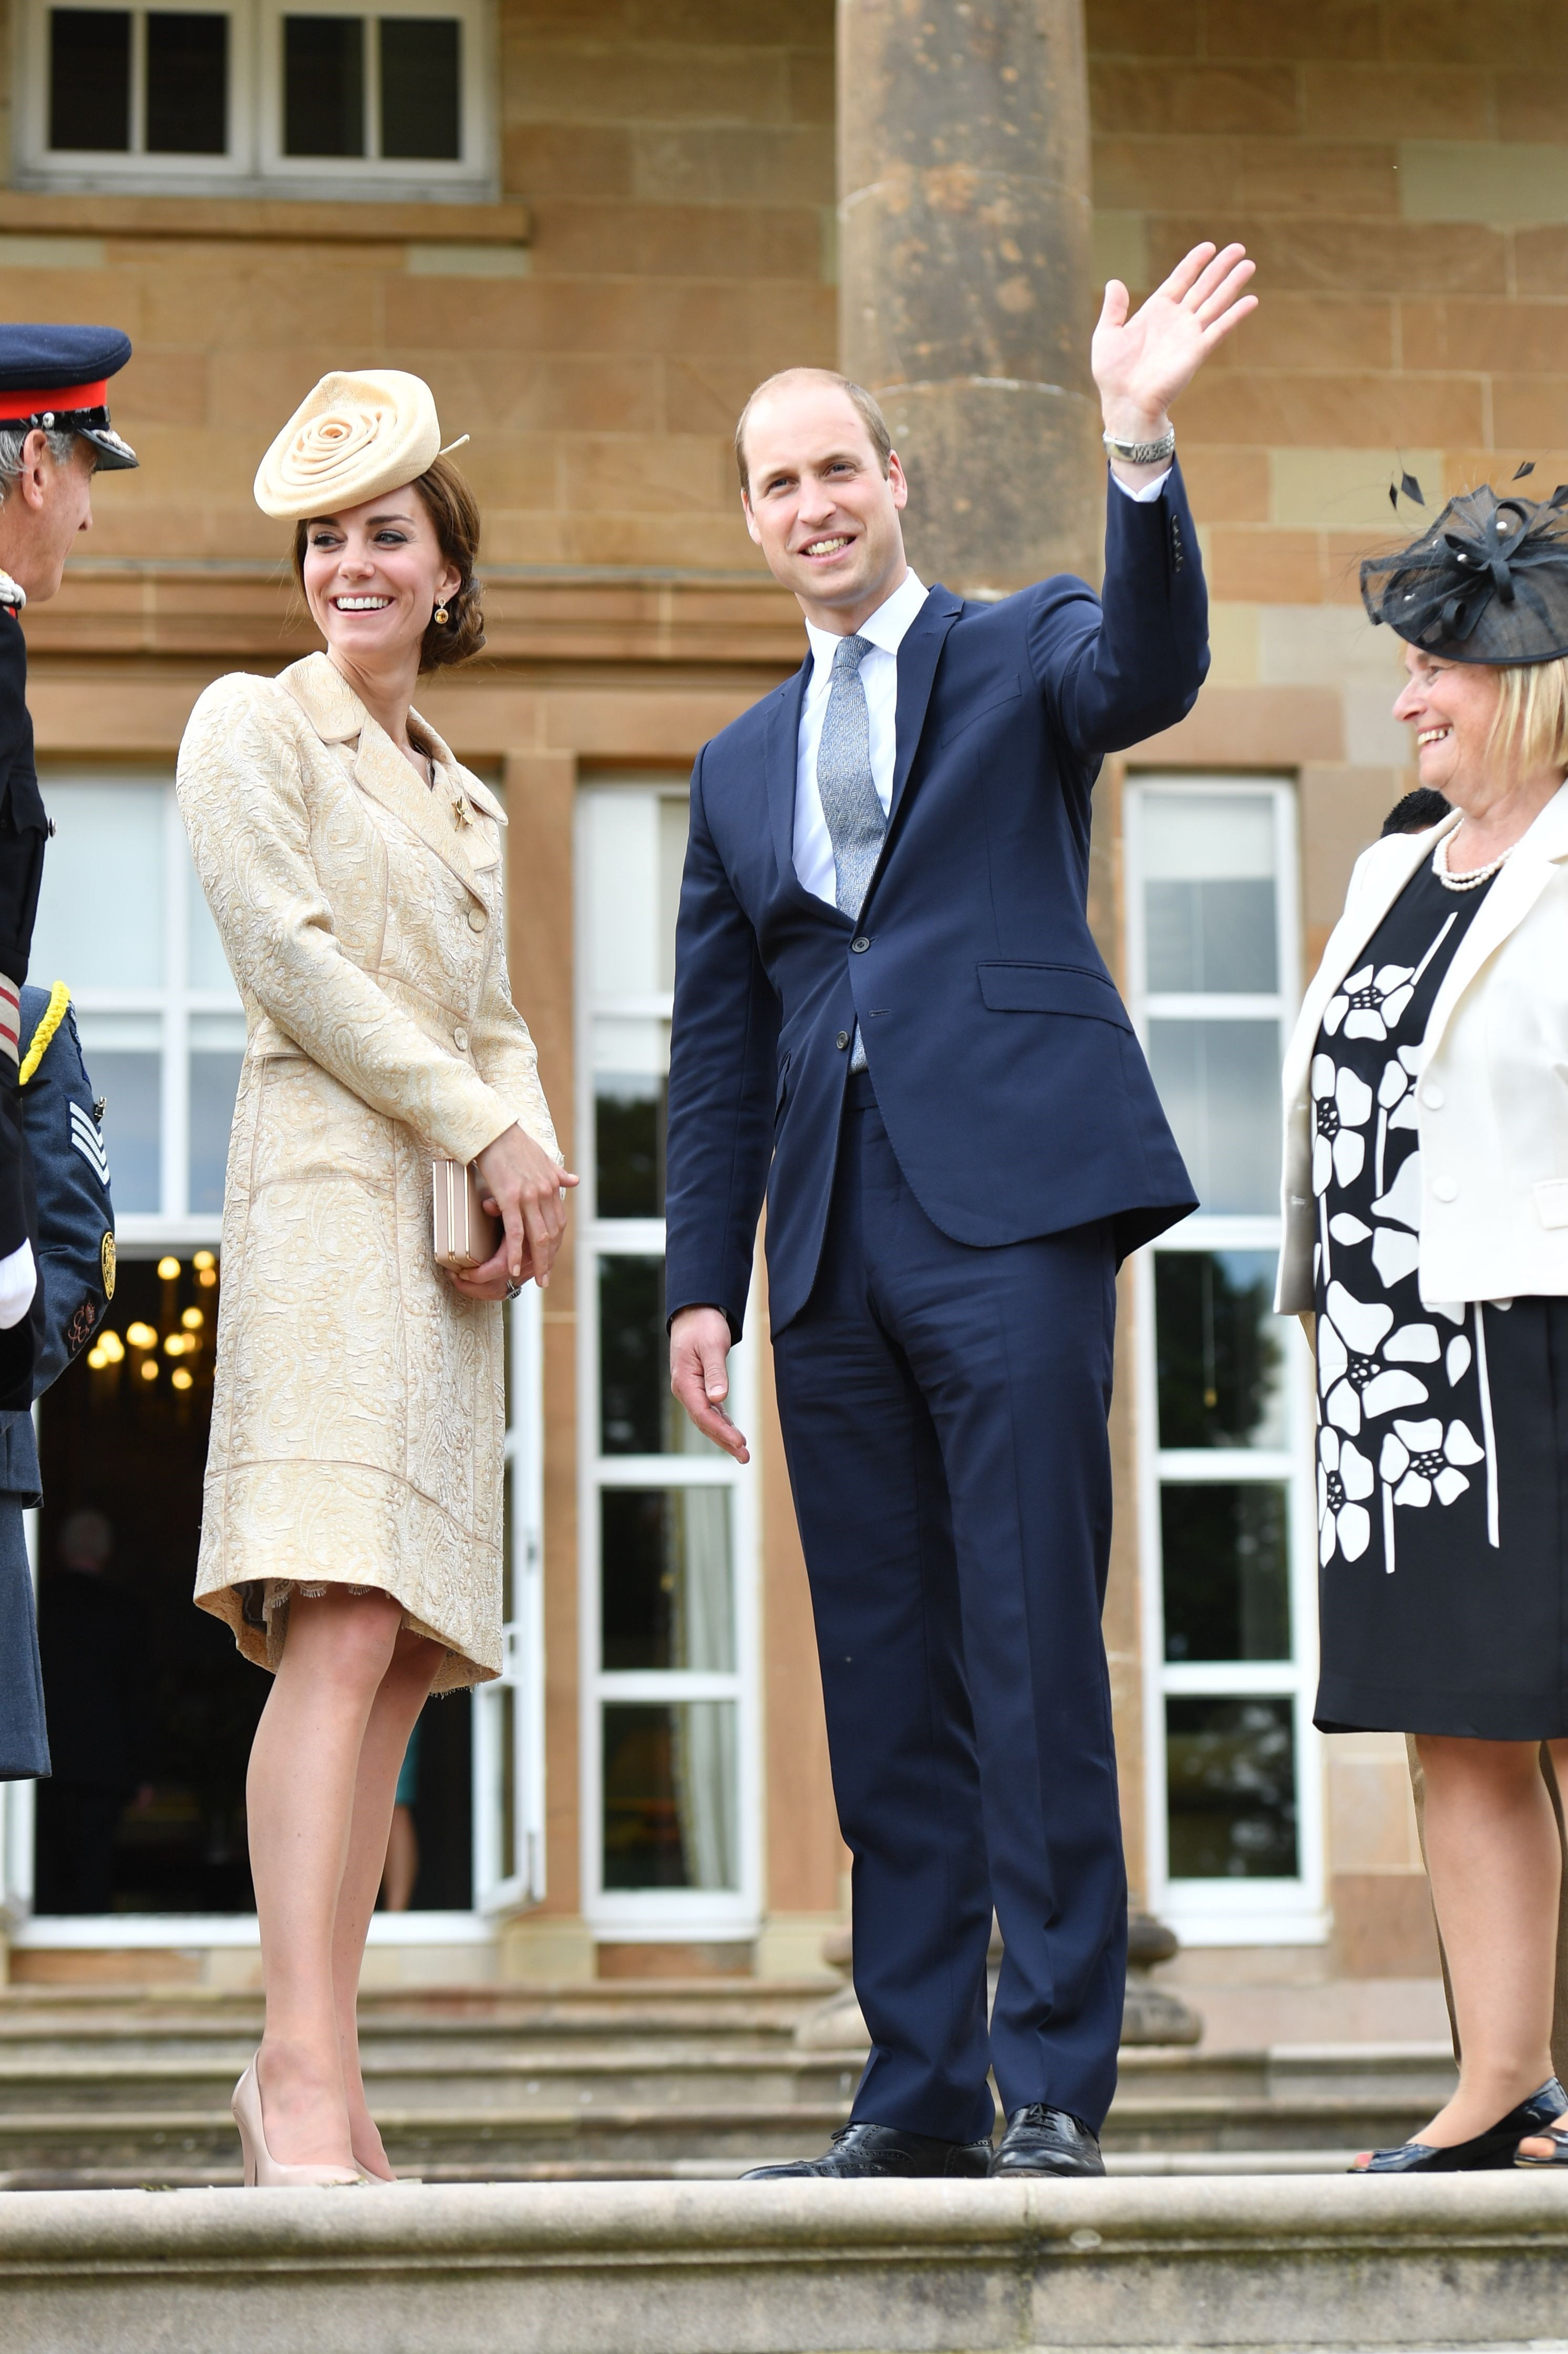 The Duke of Cambridge stands up to bullying in new campaign